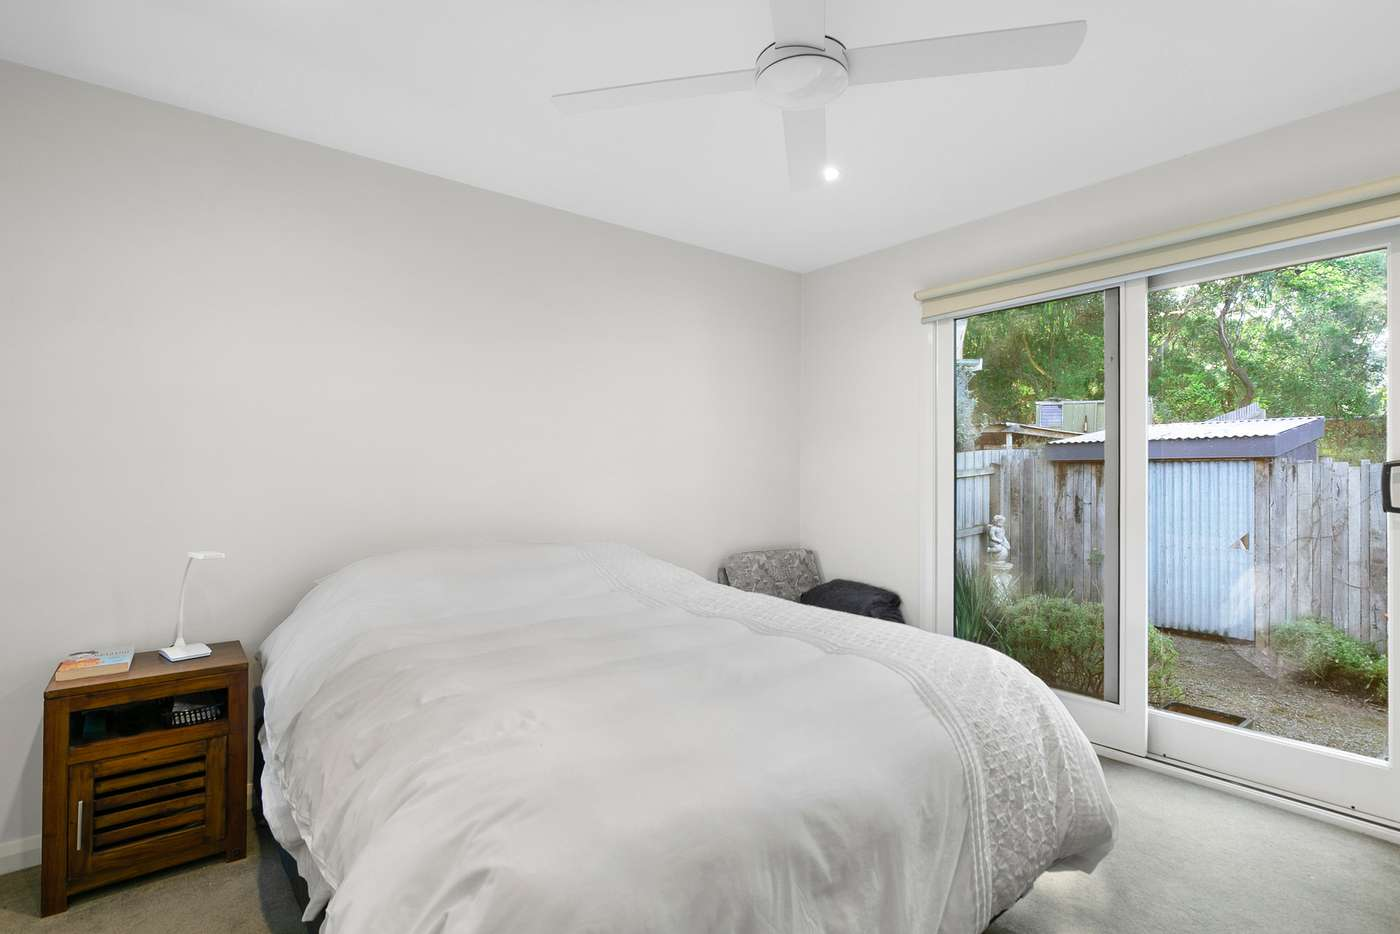 Sixth view of Homely house listing, 34 Waverley Avenue, Lorne VIC 3232